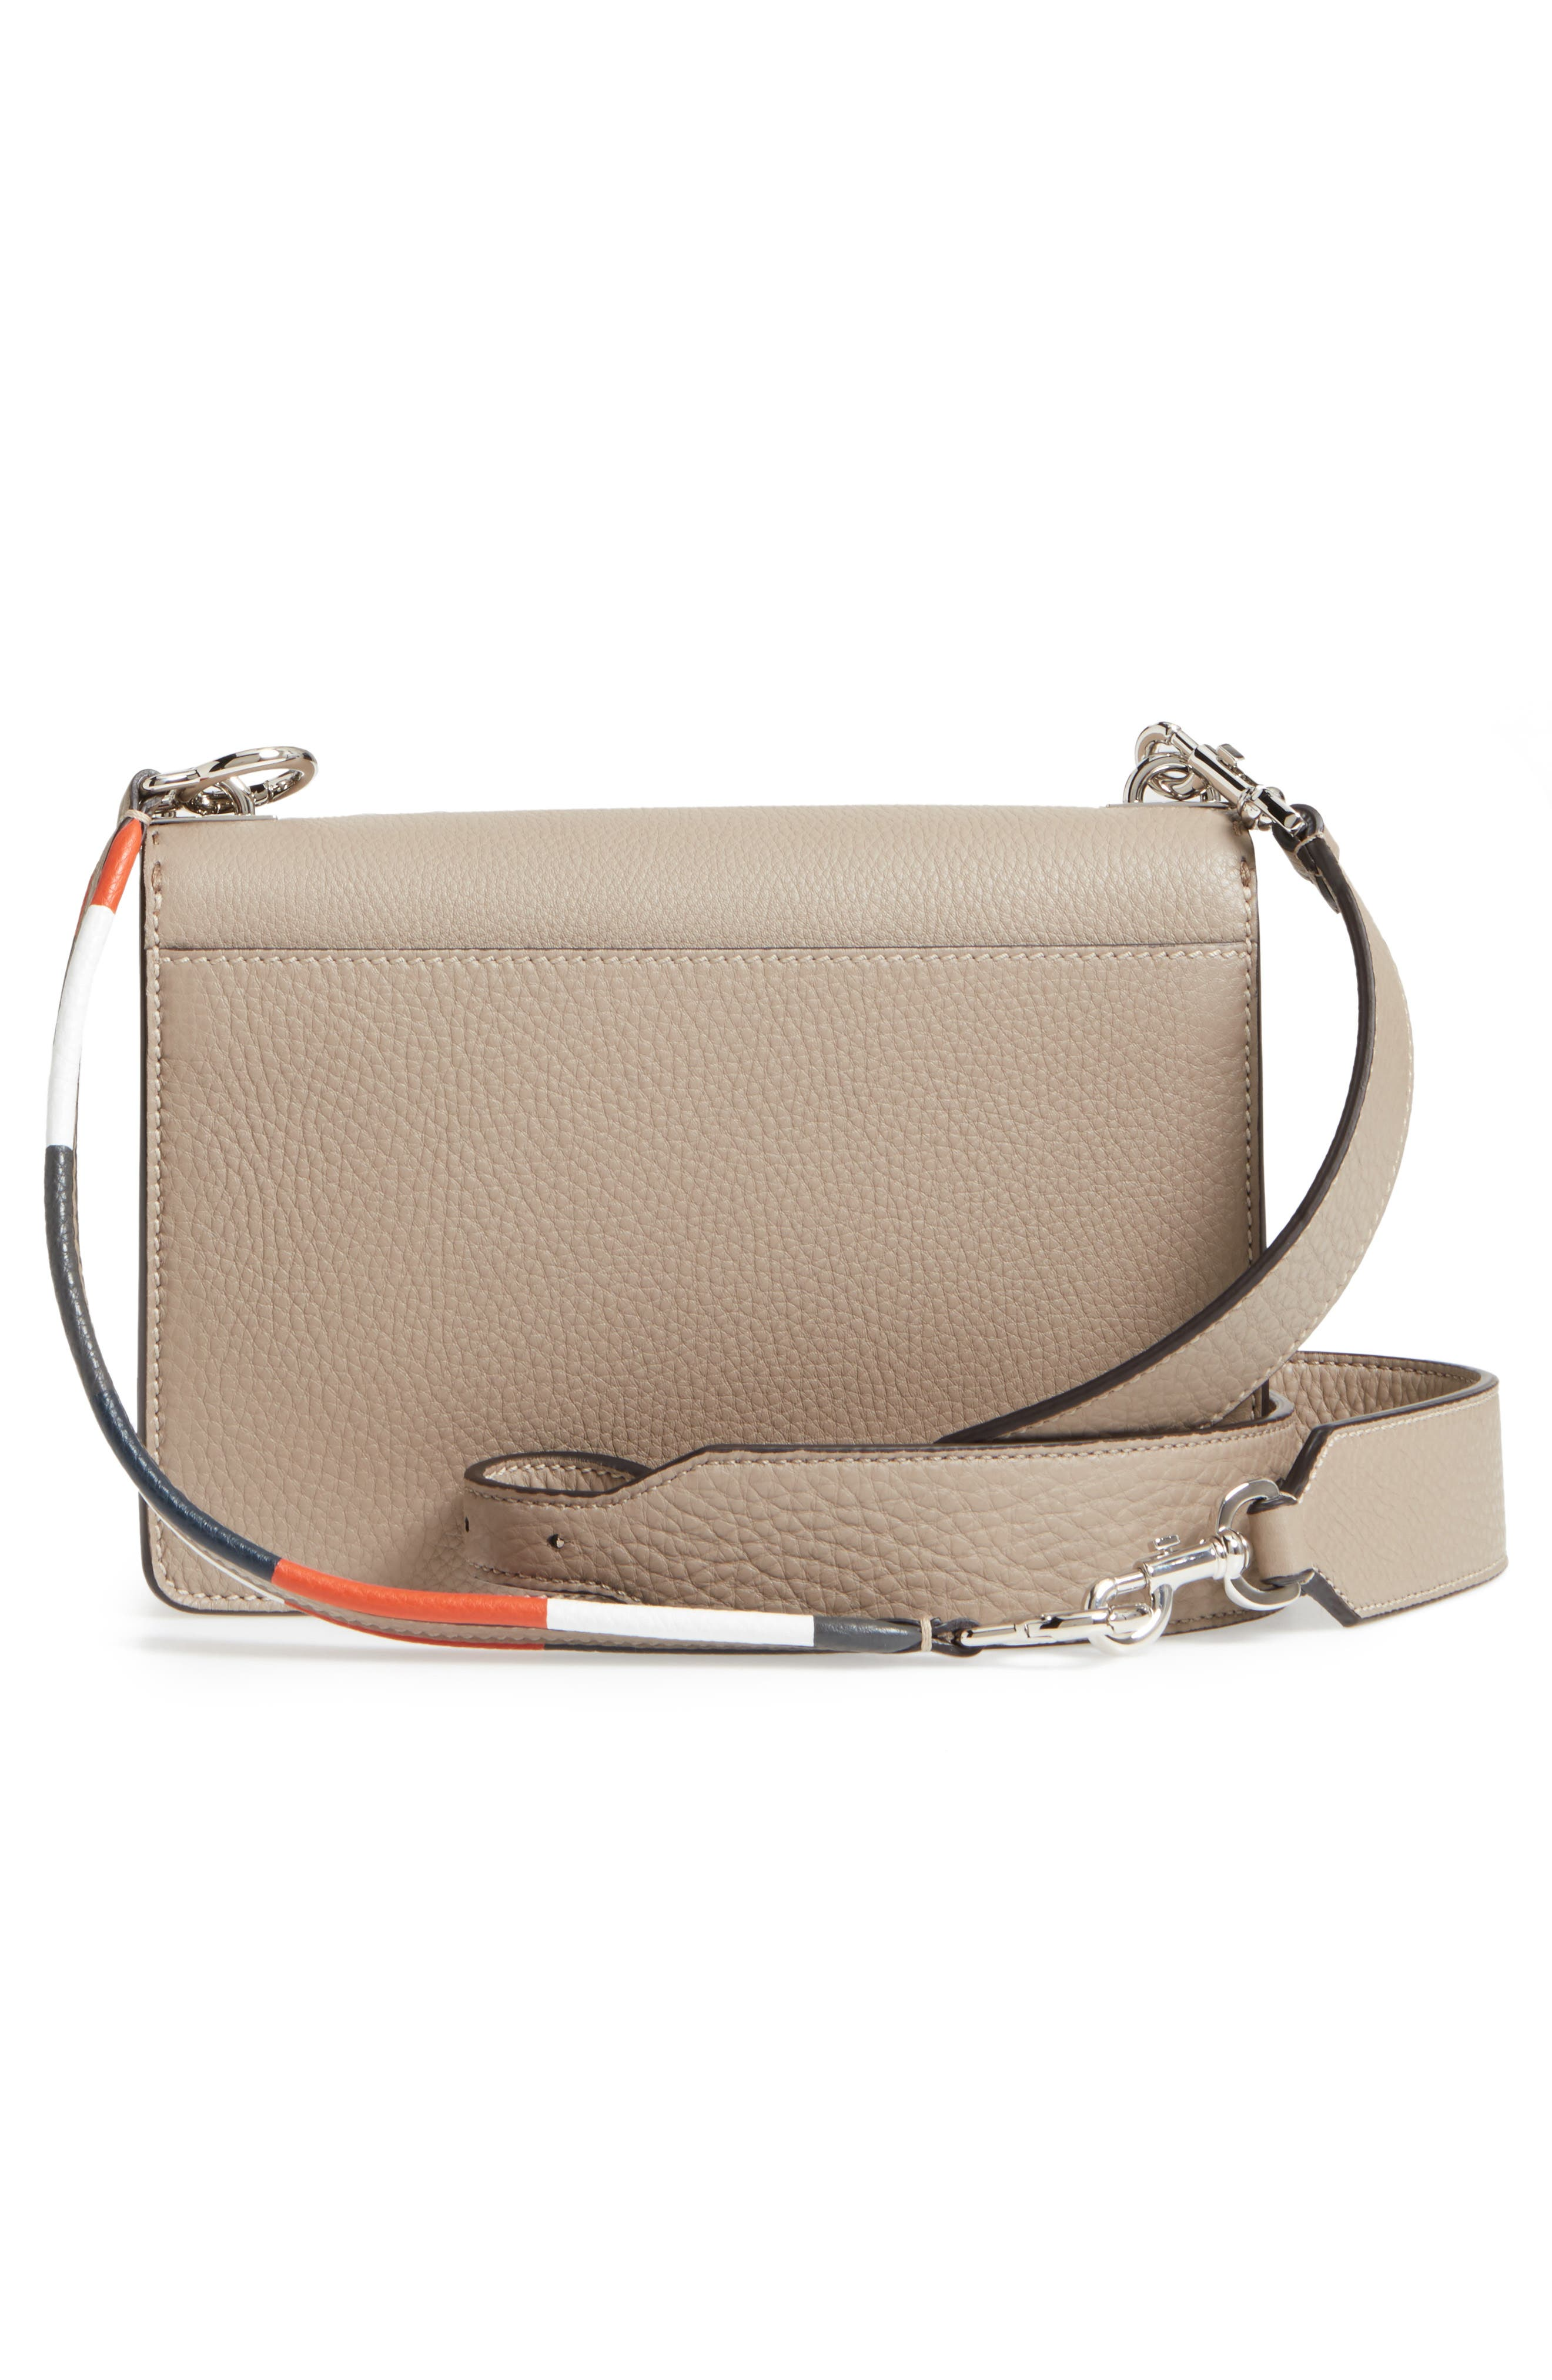 Pebbled Leather Messenger Bag,                             Alternate thumbnail 3, color,                             Beige